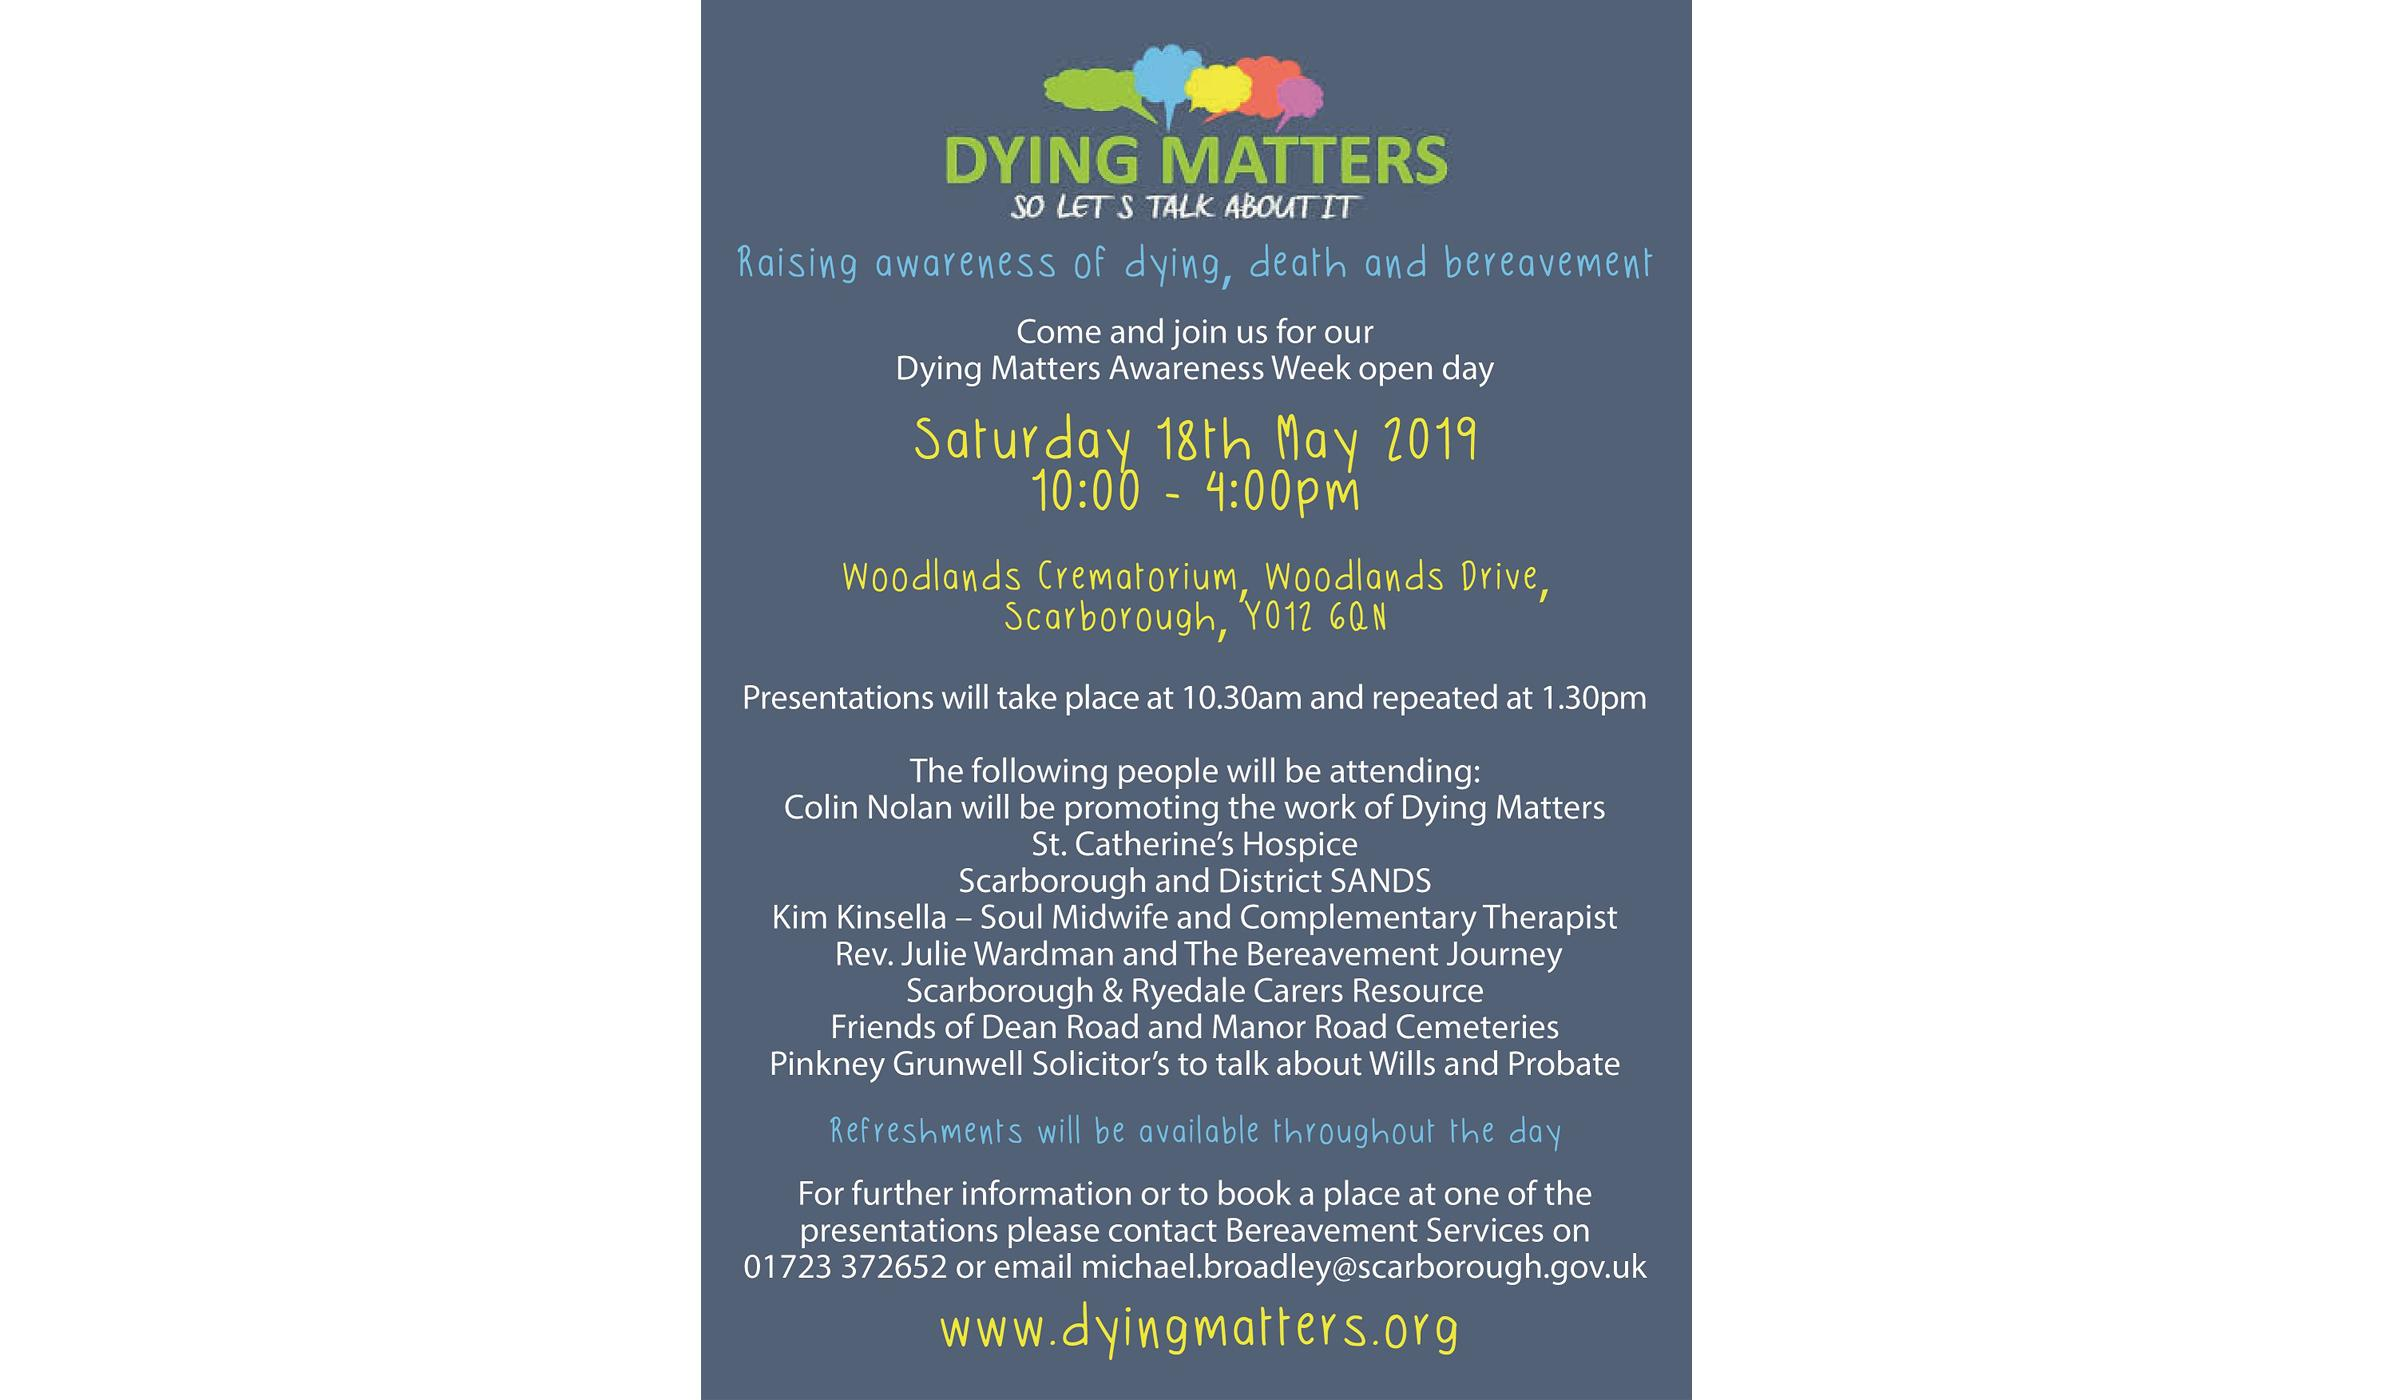 Image of promotional poster for Dying Matters event